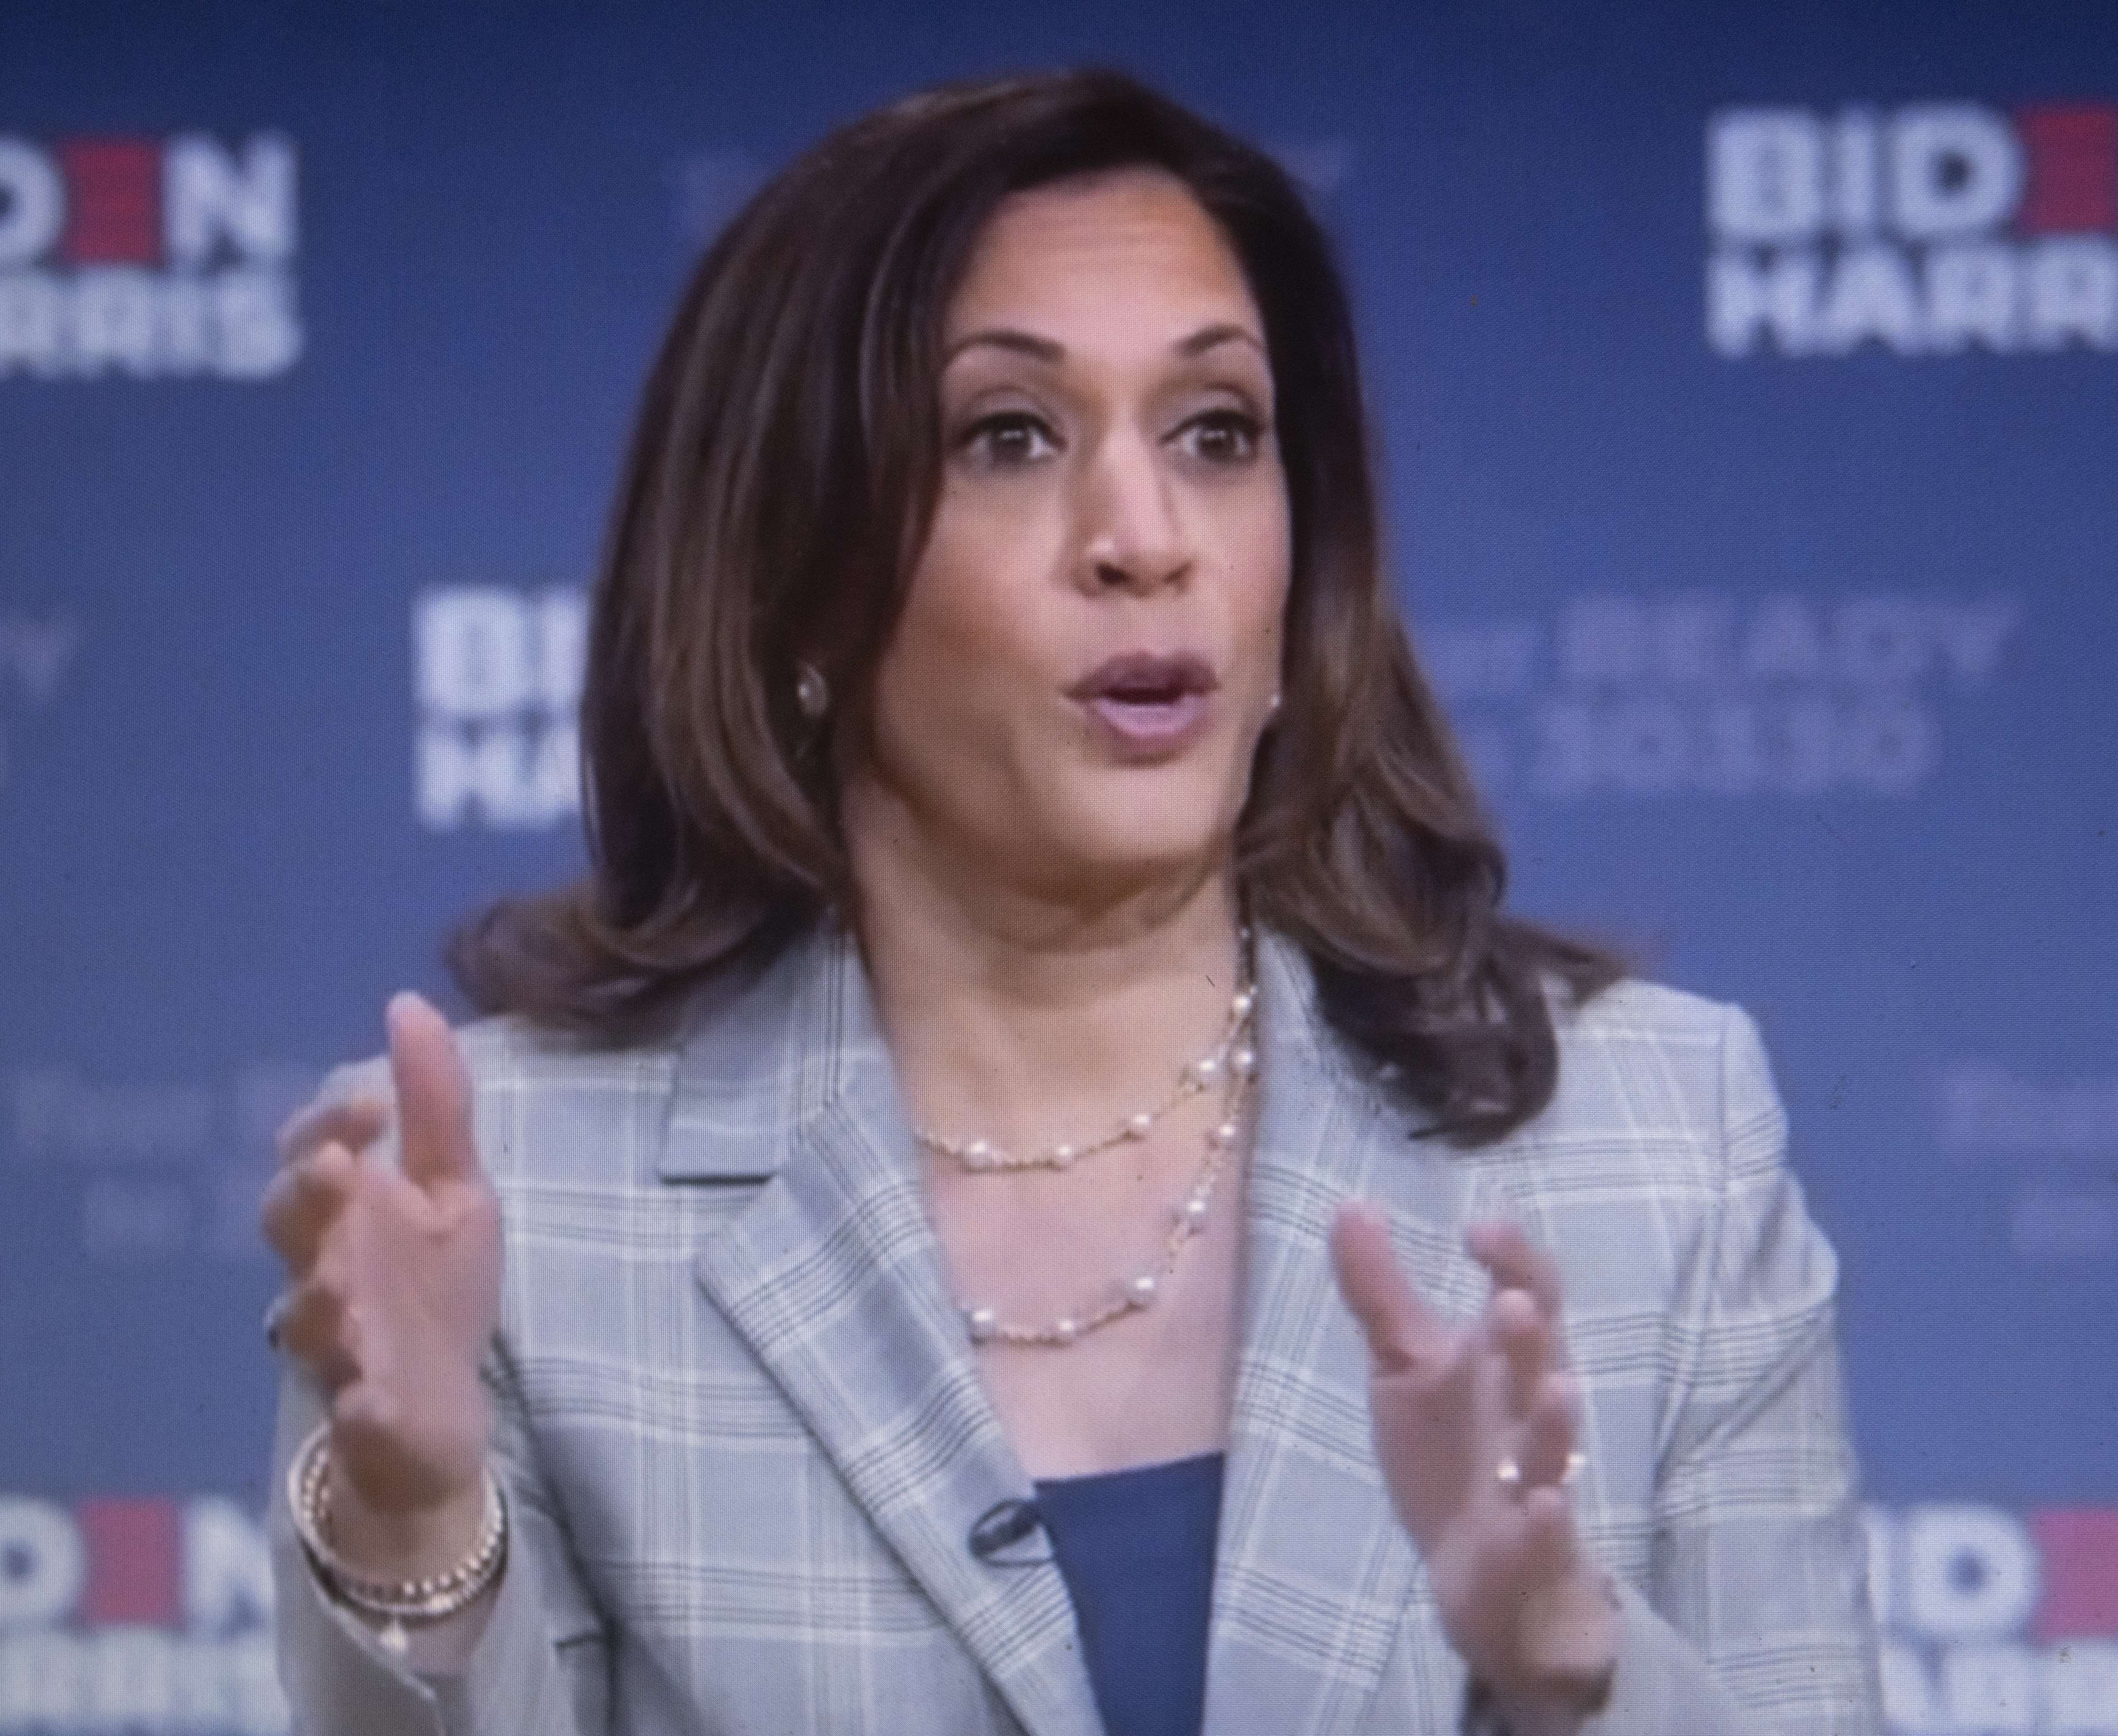 Dwayne Johnson My conversation with Joe Biden and Kamala Harris